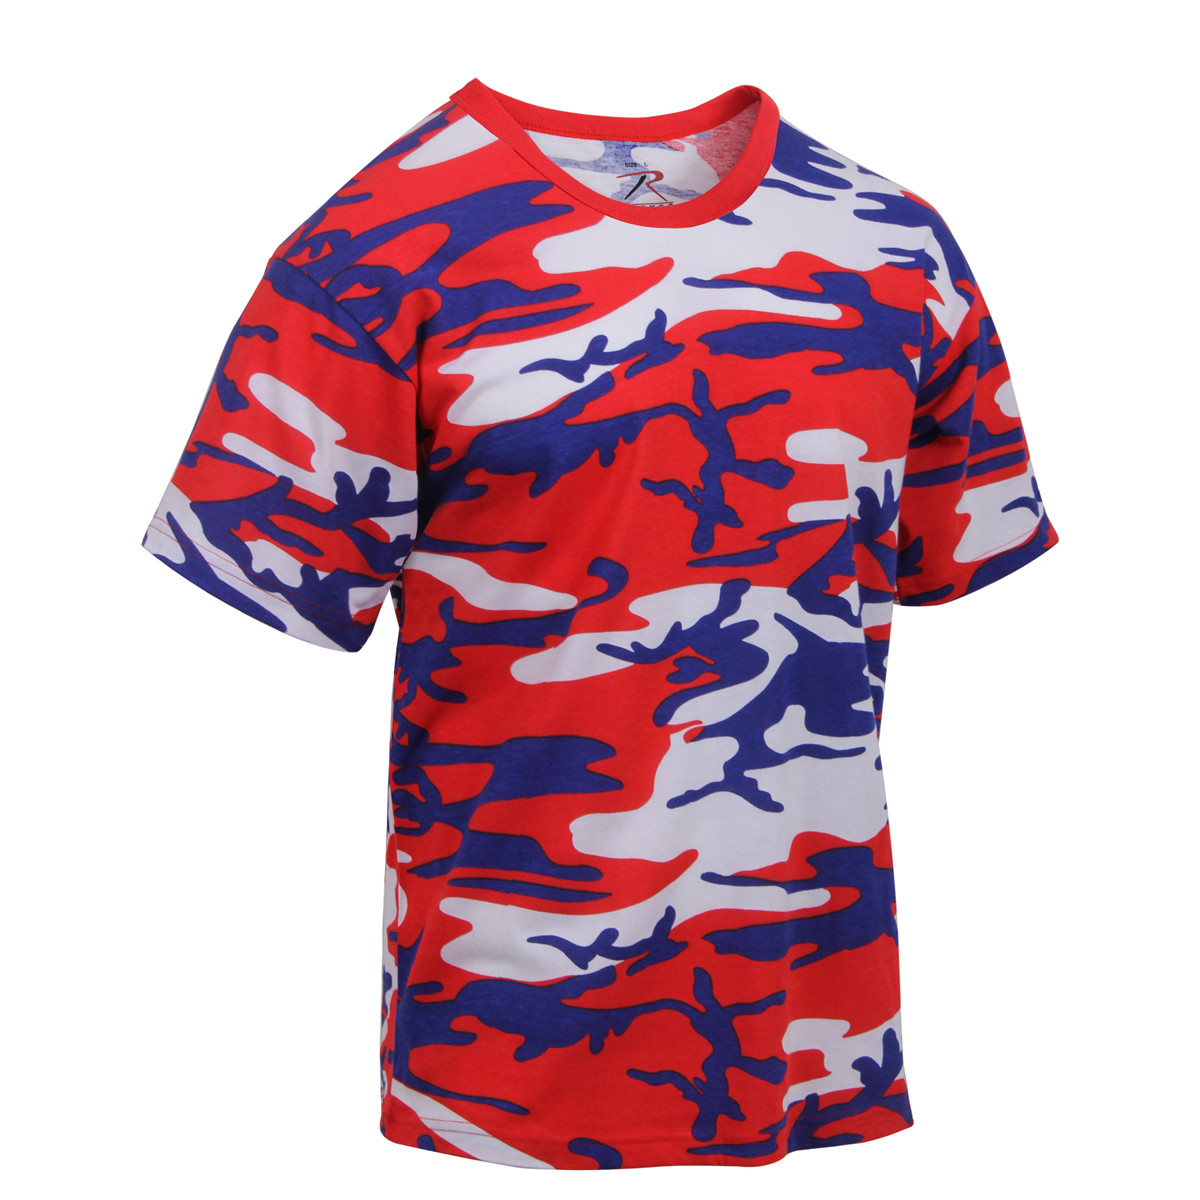 f4045943 Shop Red White Blue Camo T Shirts - Fatigues Army Navy